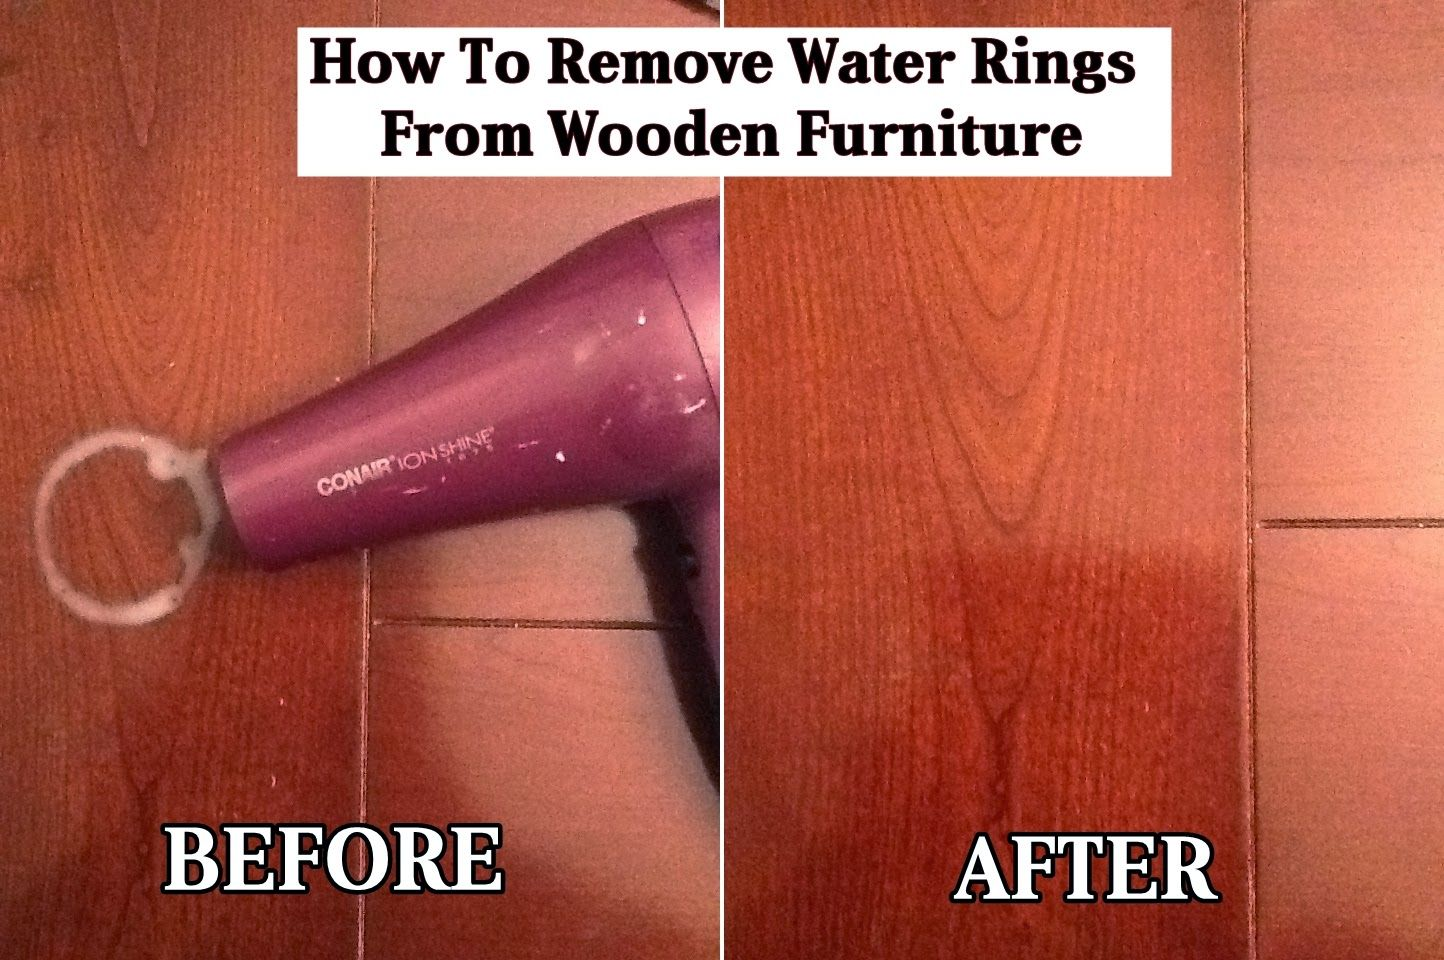 How to remove water rings from wooden furniture remove